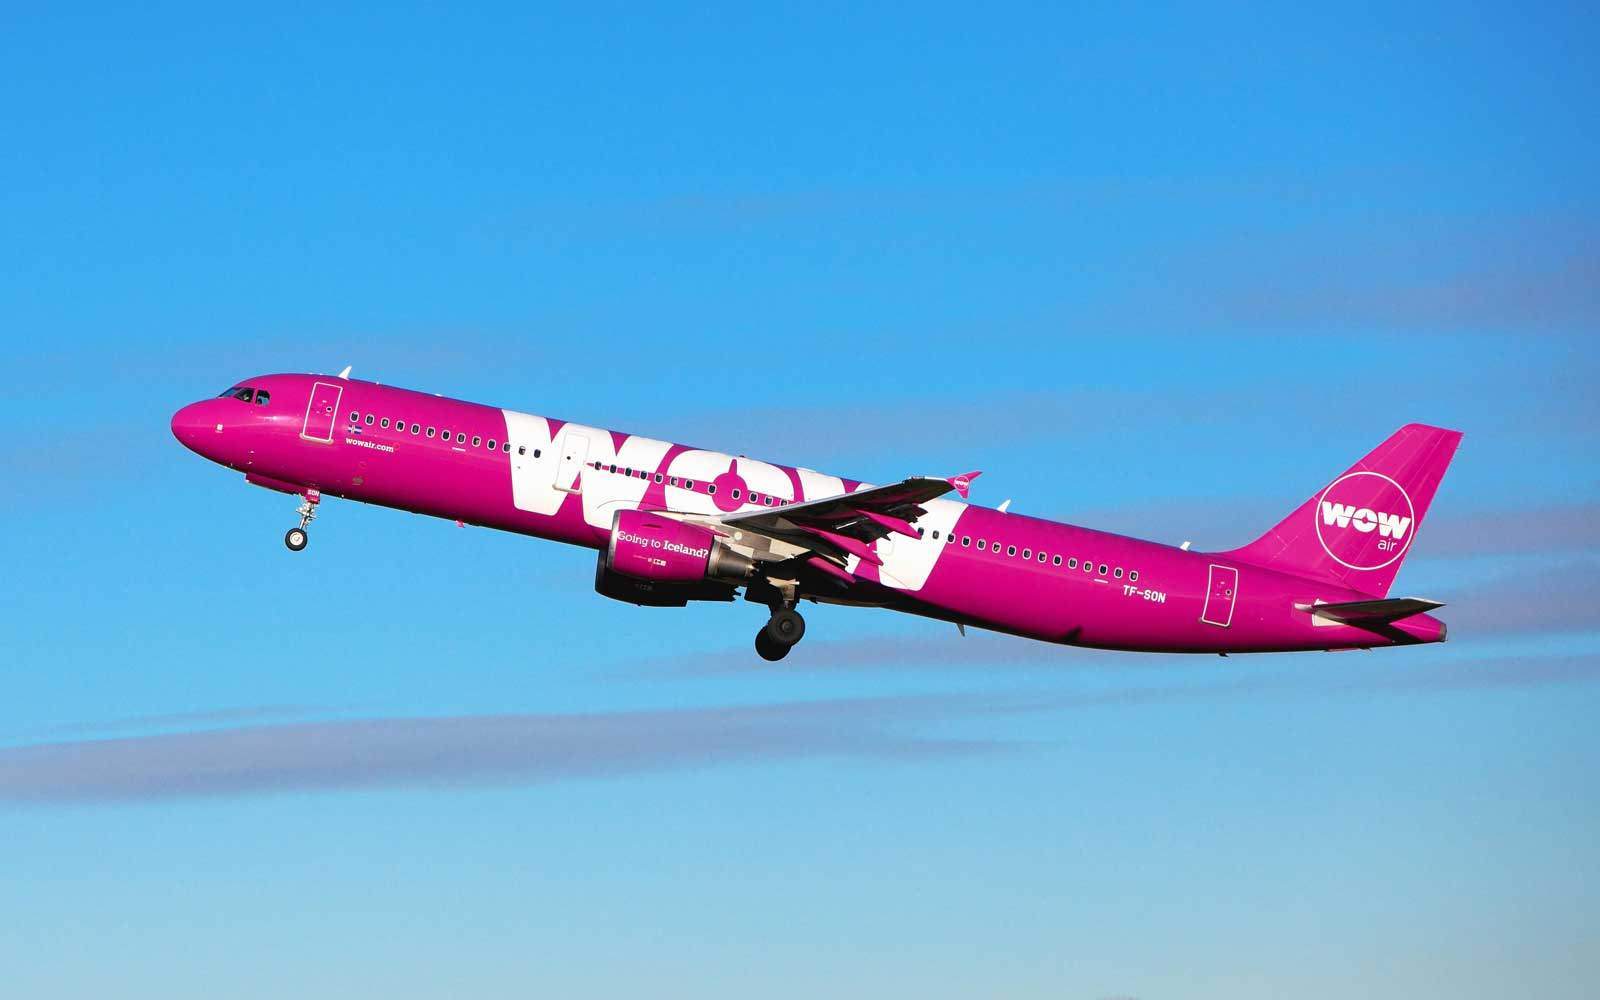 You Can Win Free Airfare From WOW Air by Posting About the Inspirational Women in Your Life